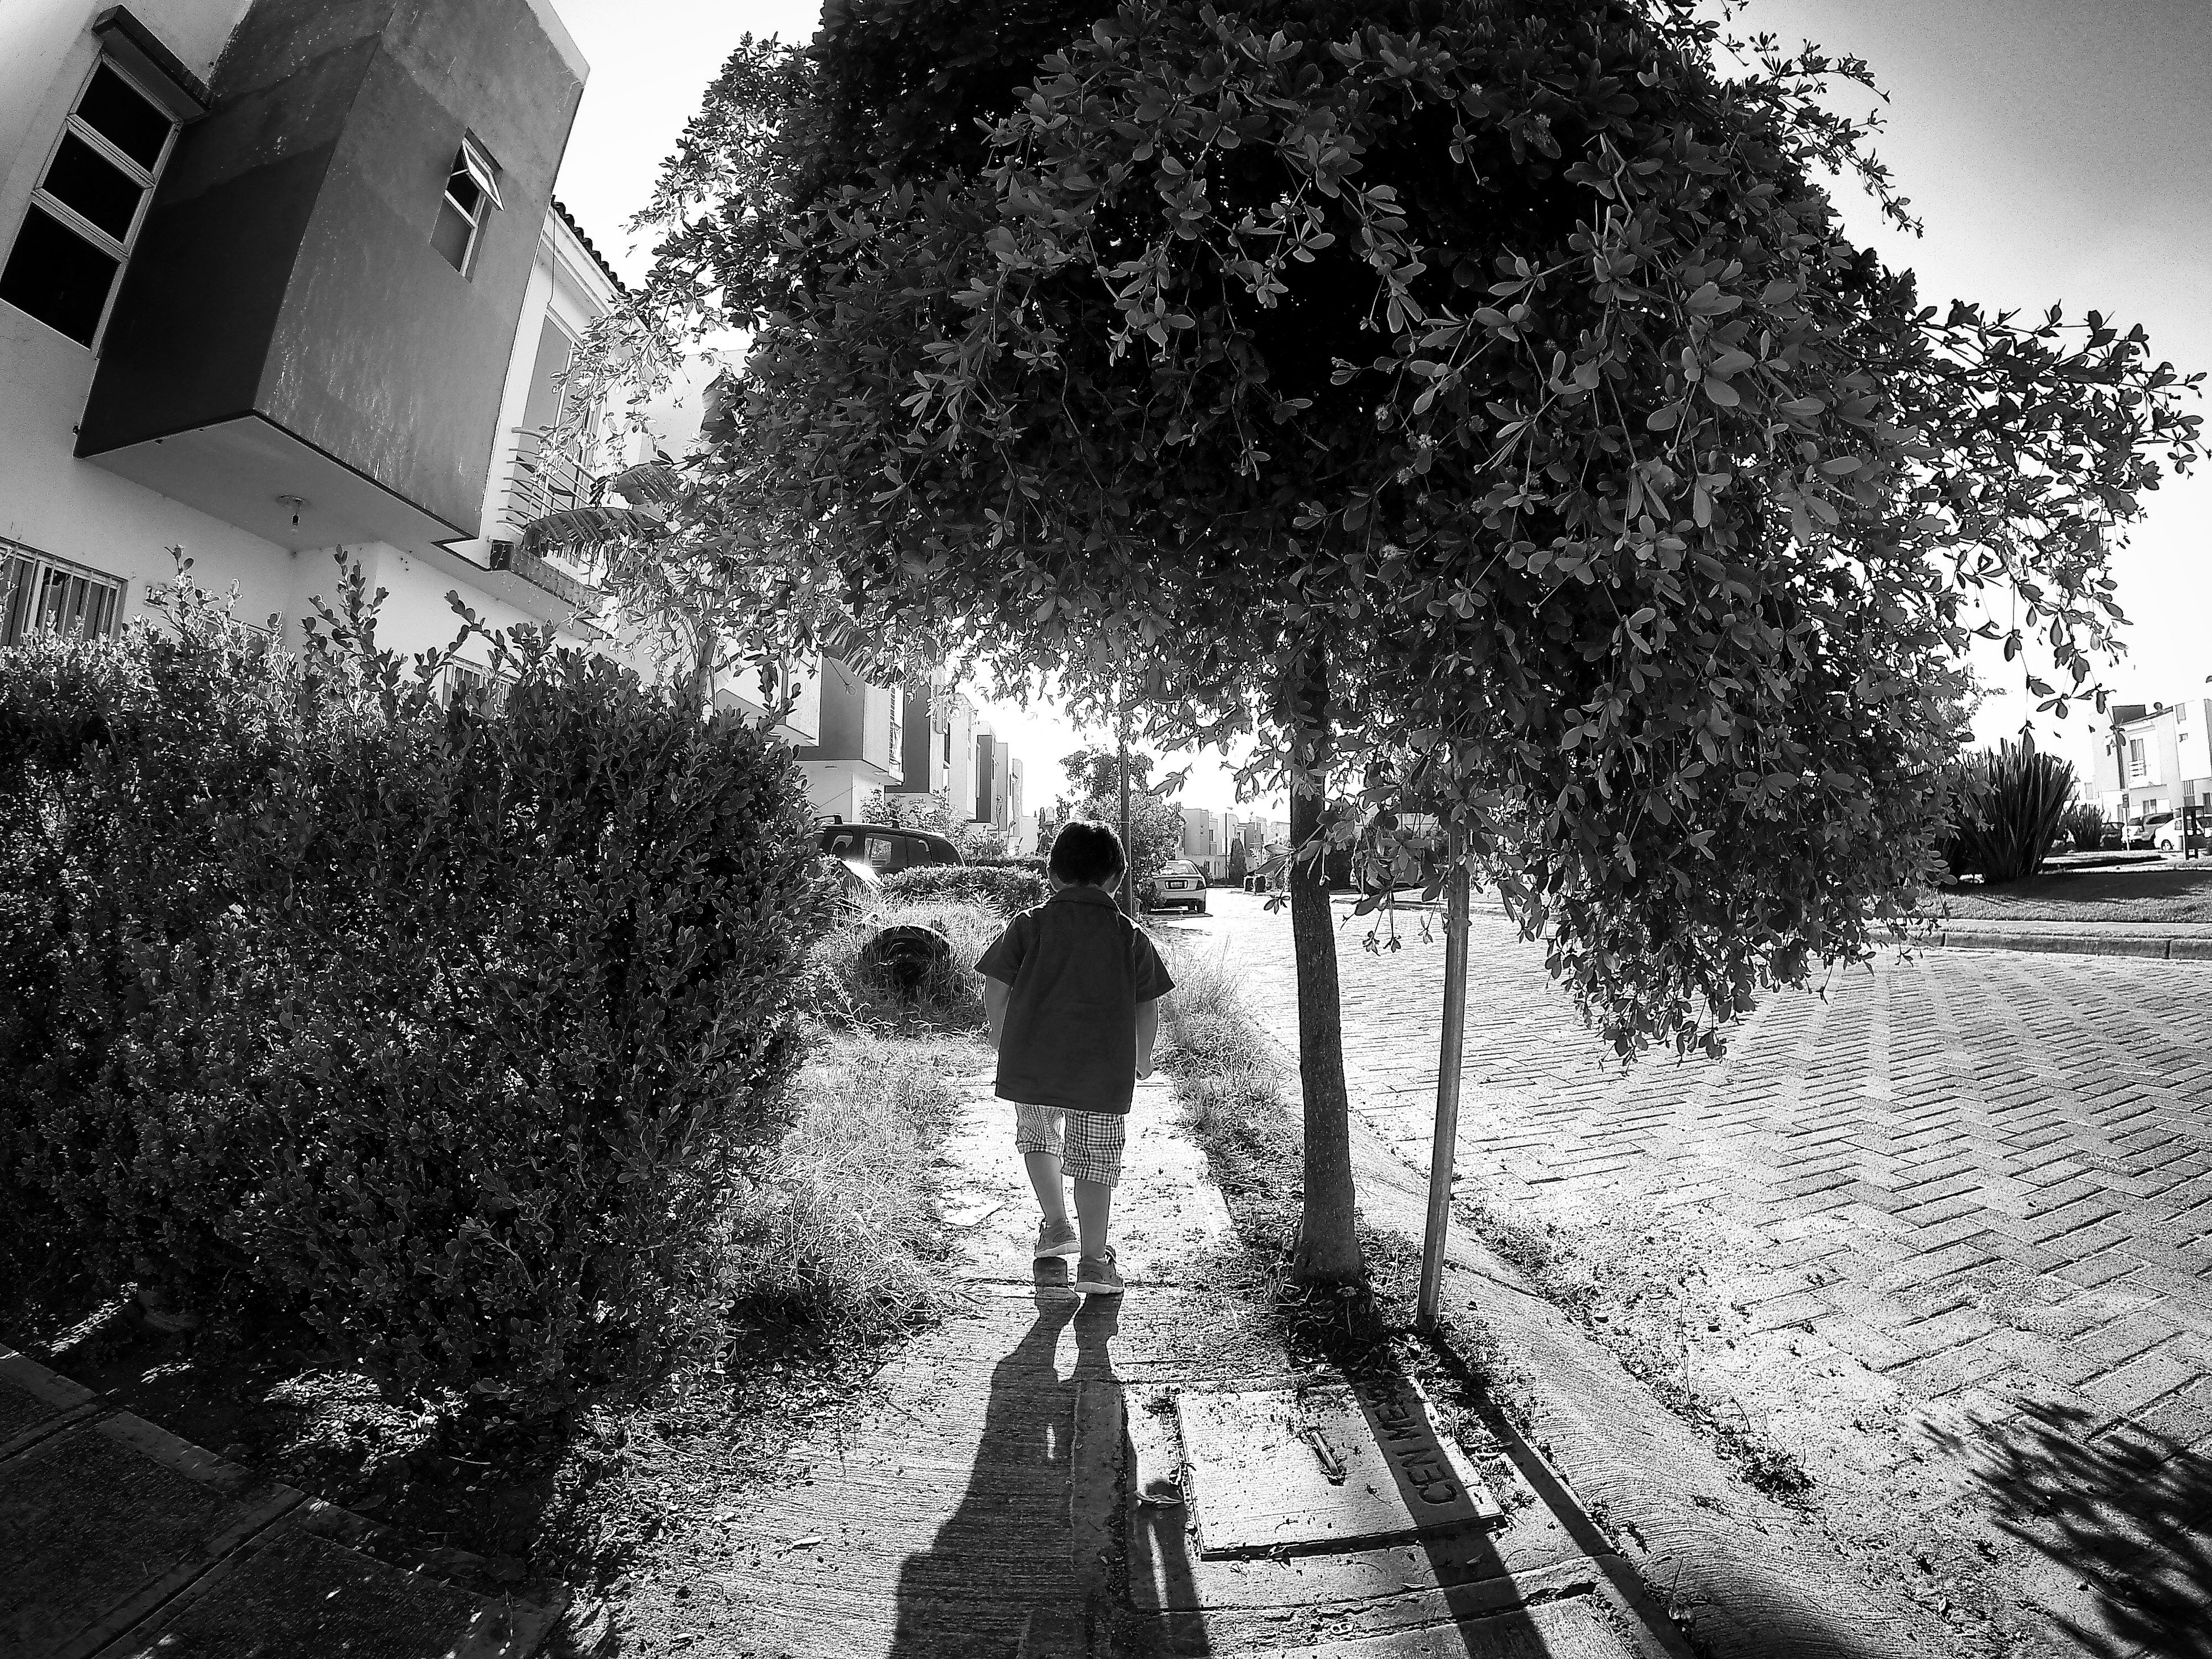 building exterior, architecture, built structure, lifestyles, walking, rear view, street, full length, men, city, leisure activity, shadow, sunlight, person, tree, building, day, city life